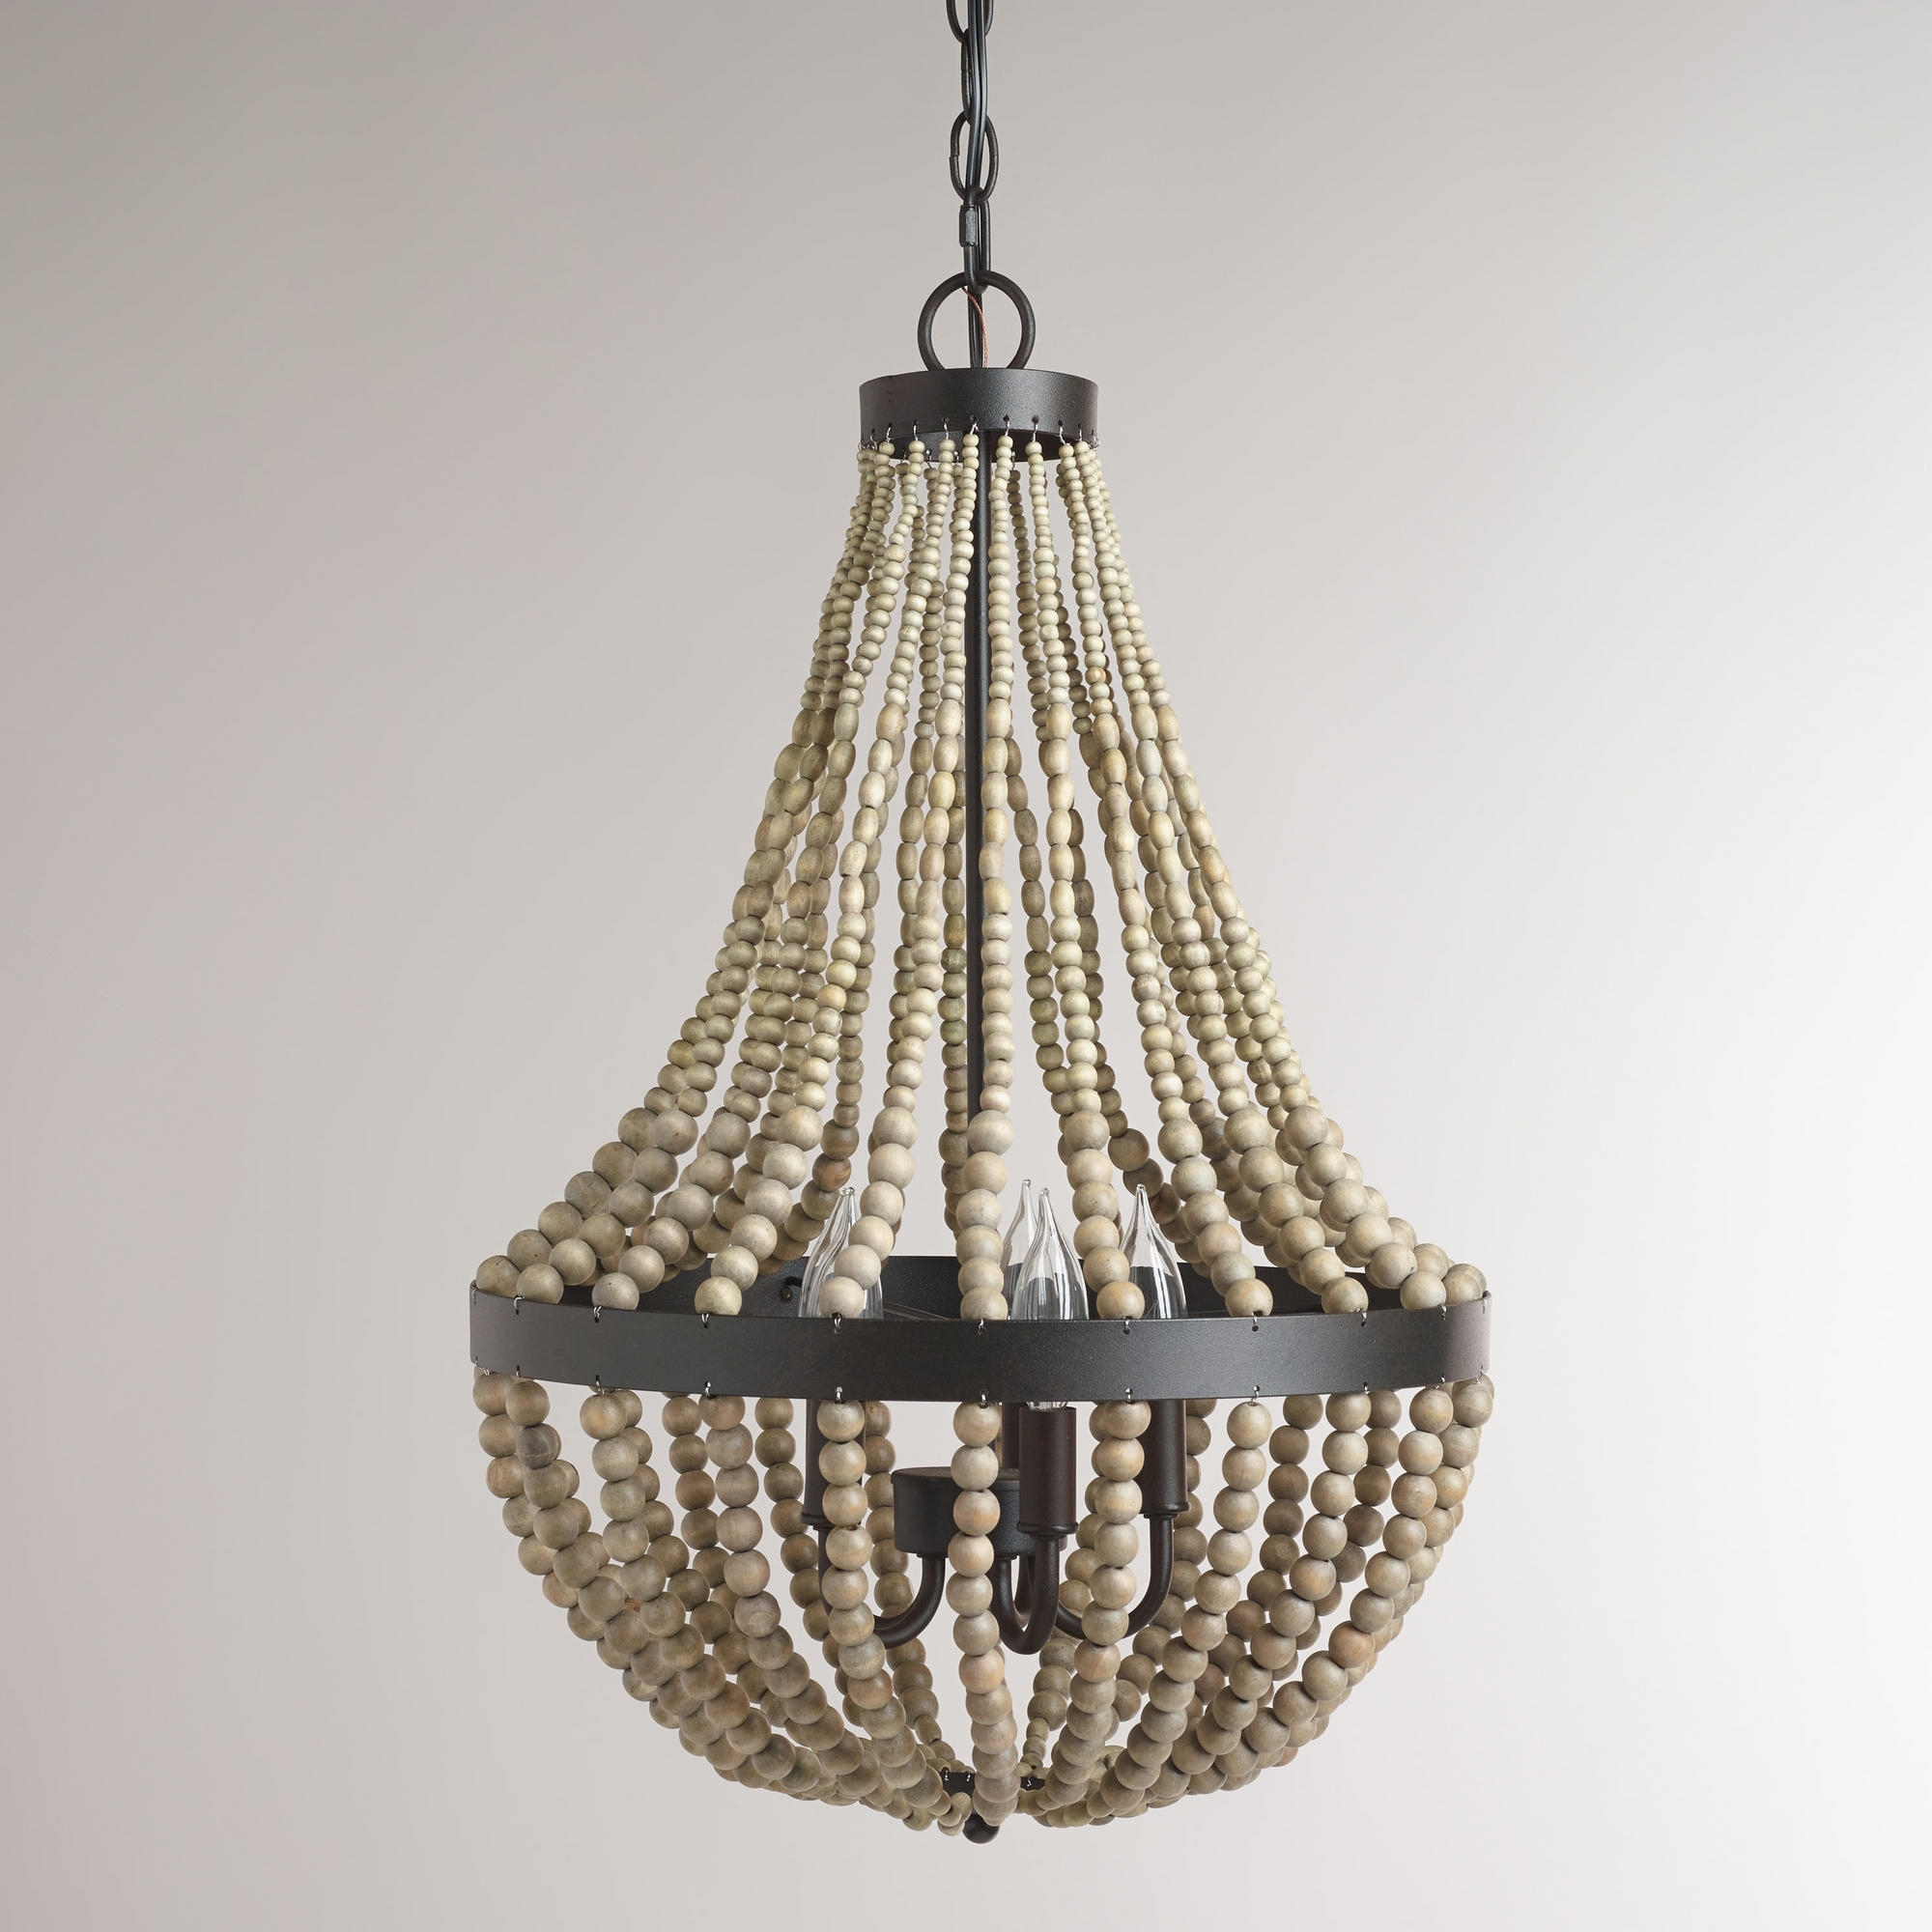 Interior Amazing Ceiling Light Wood Bead Chandelier For Home Regarding Small Turquoise Beaded Chandeliers (Image 20 of 25)